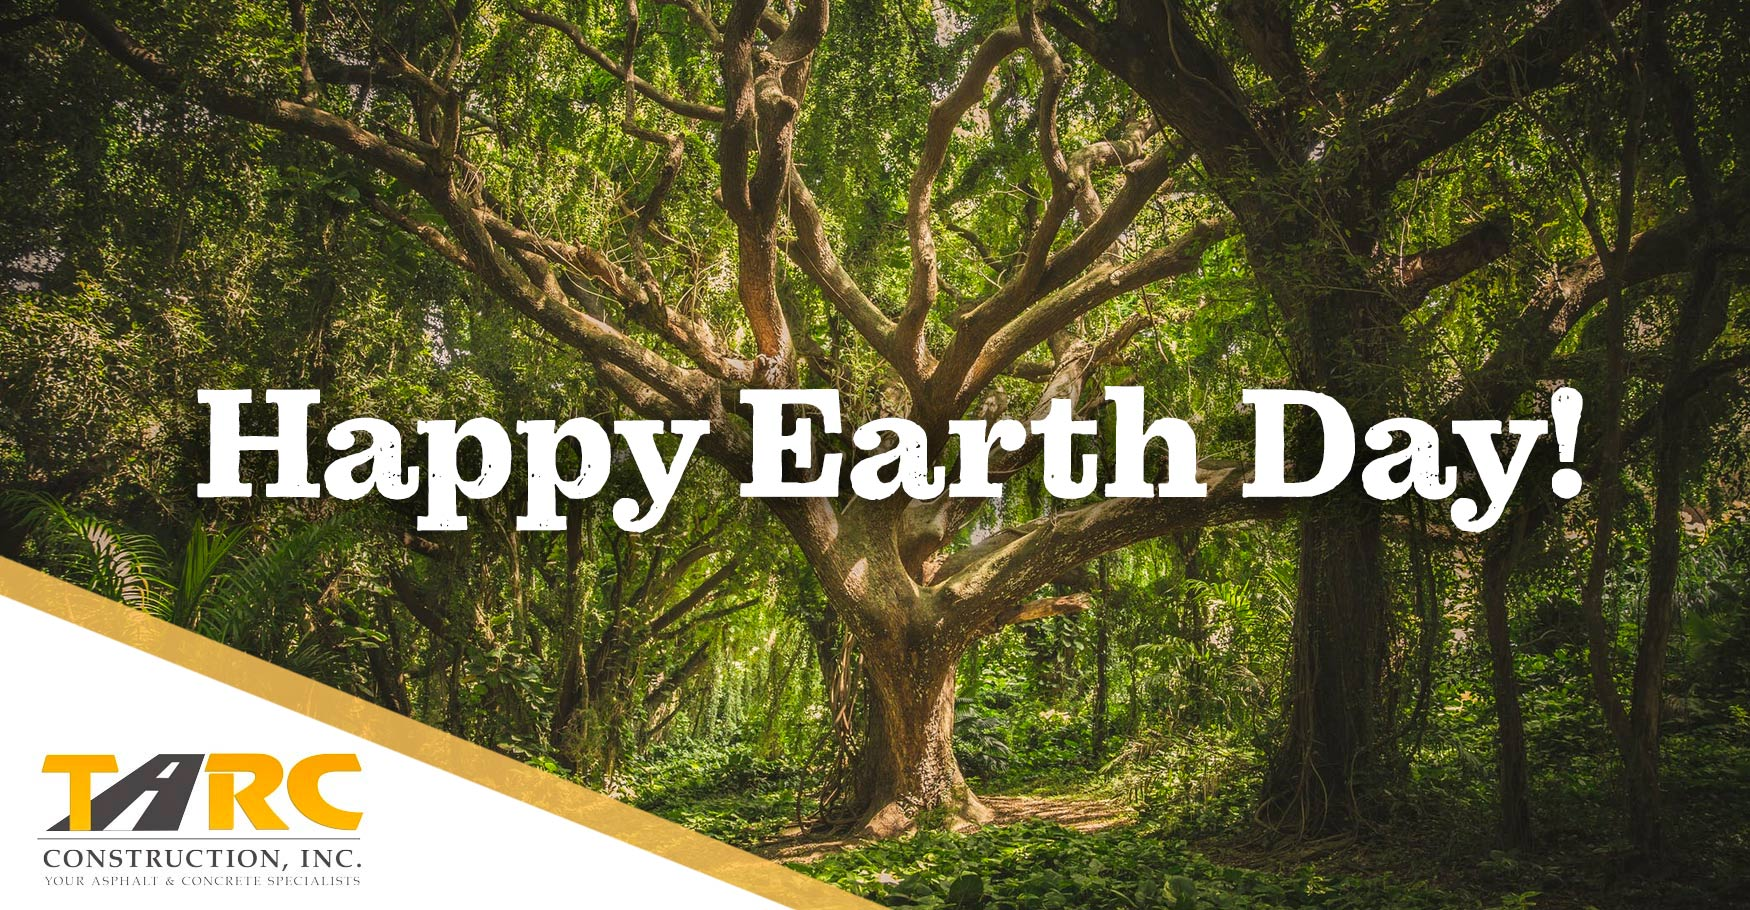 Happy Earth Day from Tarc